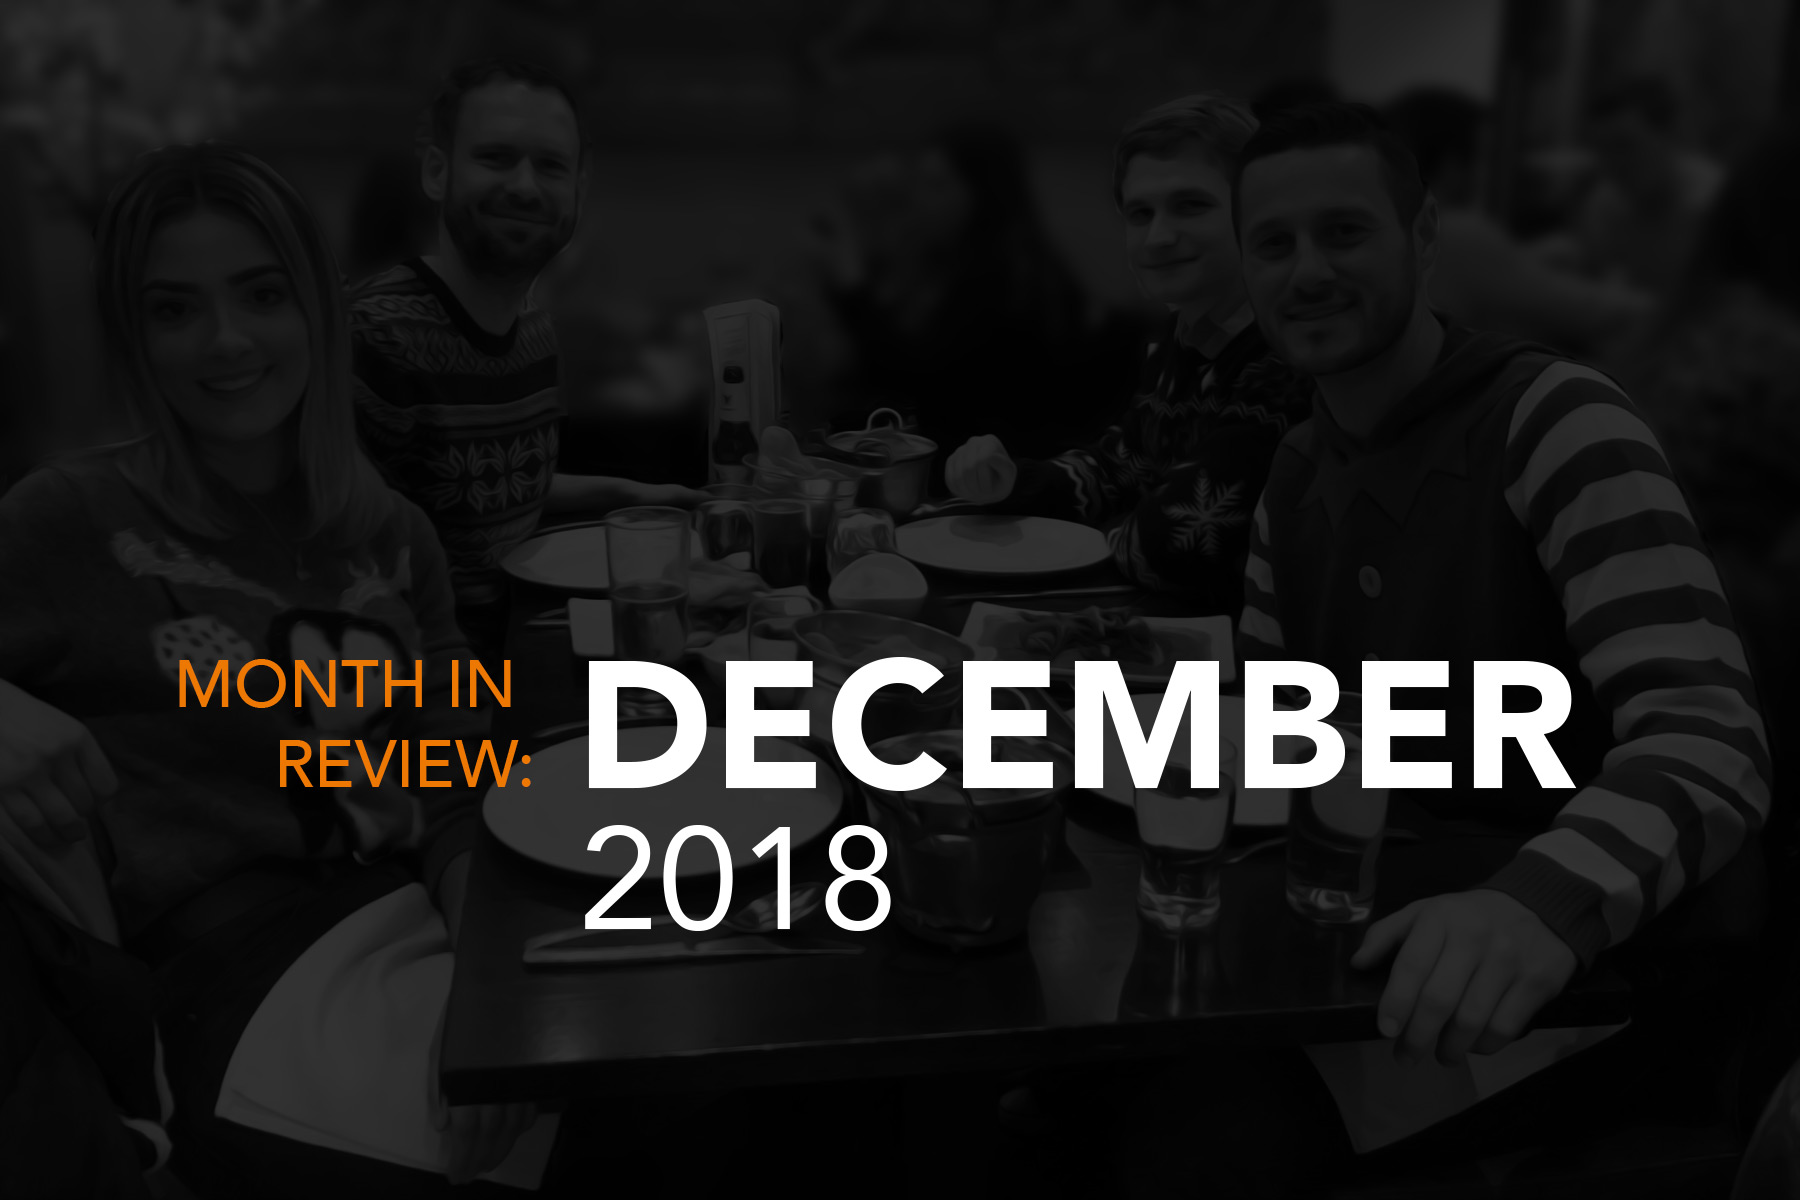 December 2018 Review